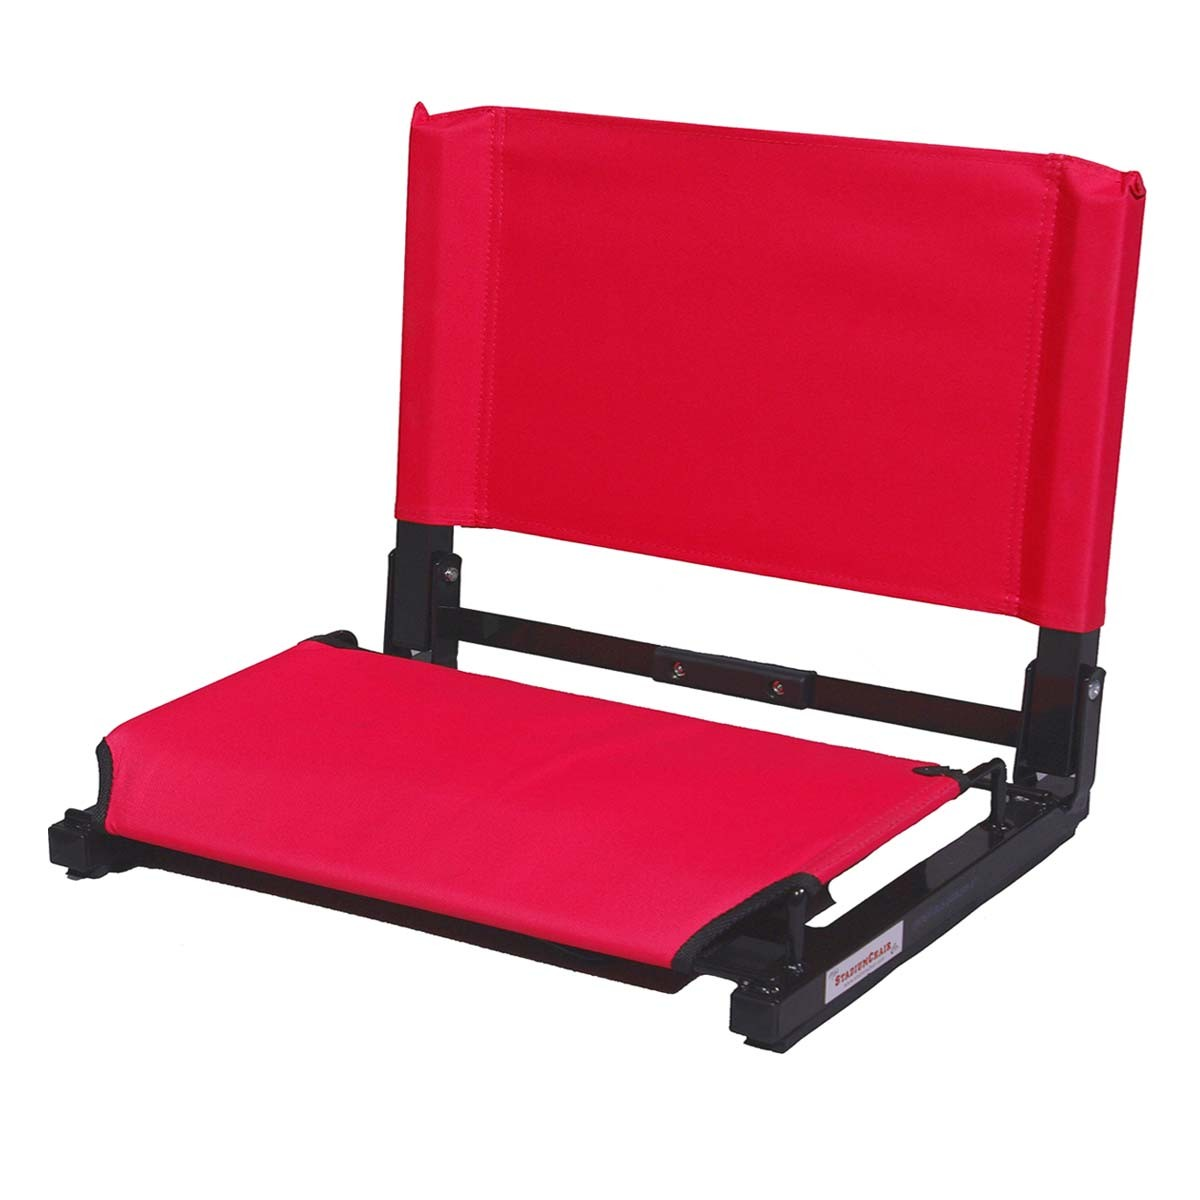 chair under cover childrens adirondack stadium seat with back anthem sports